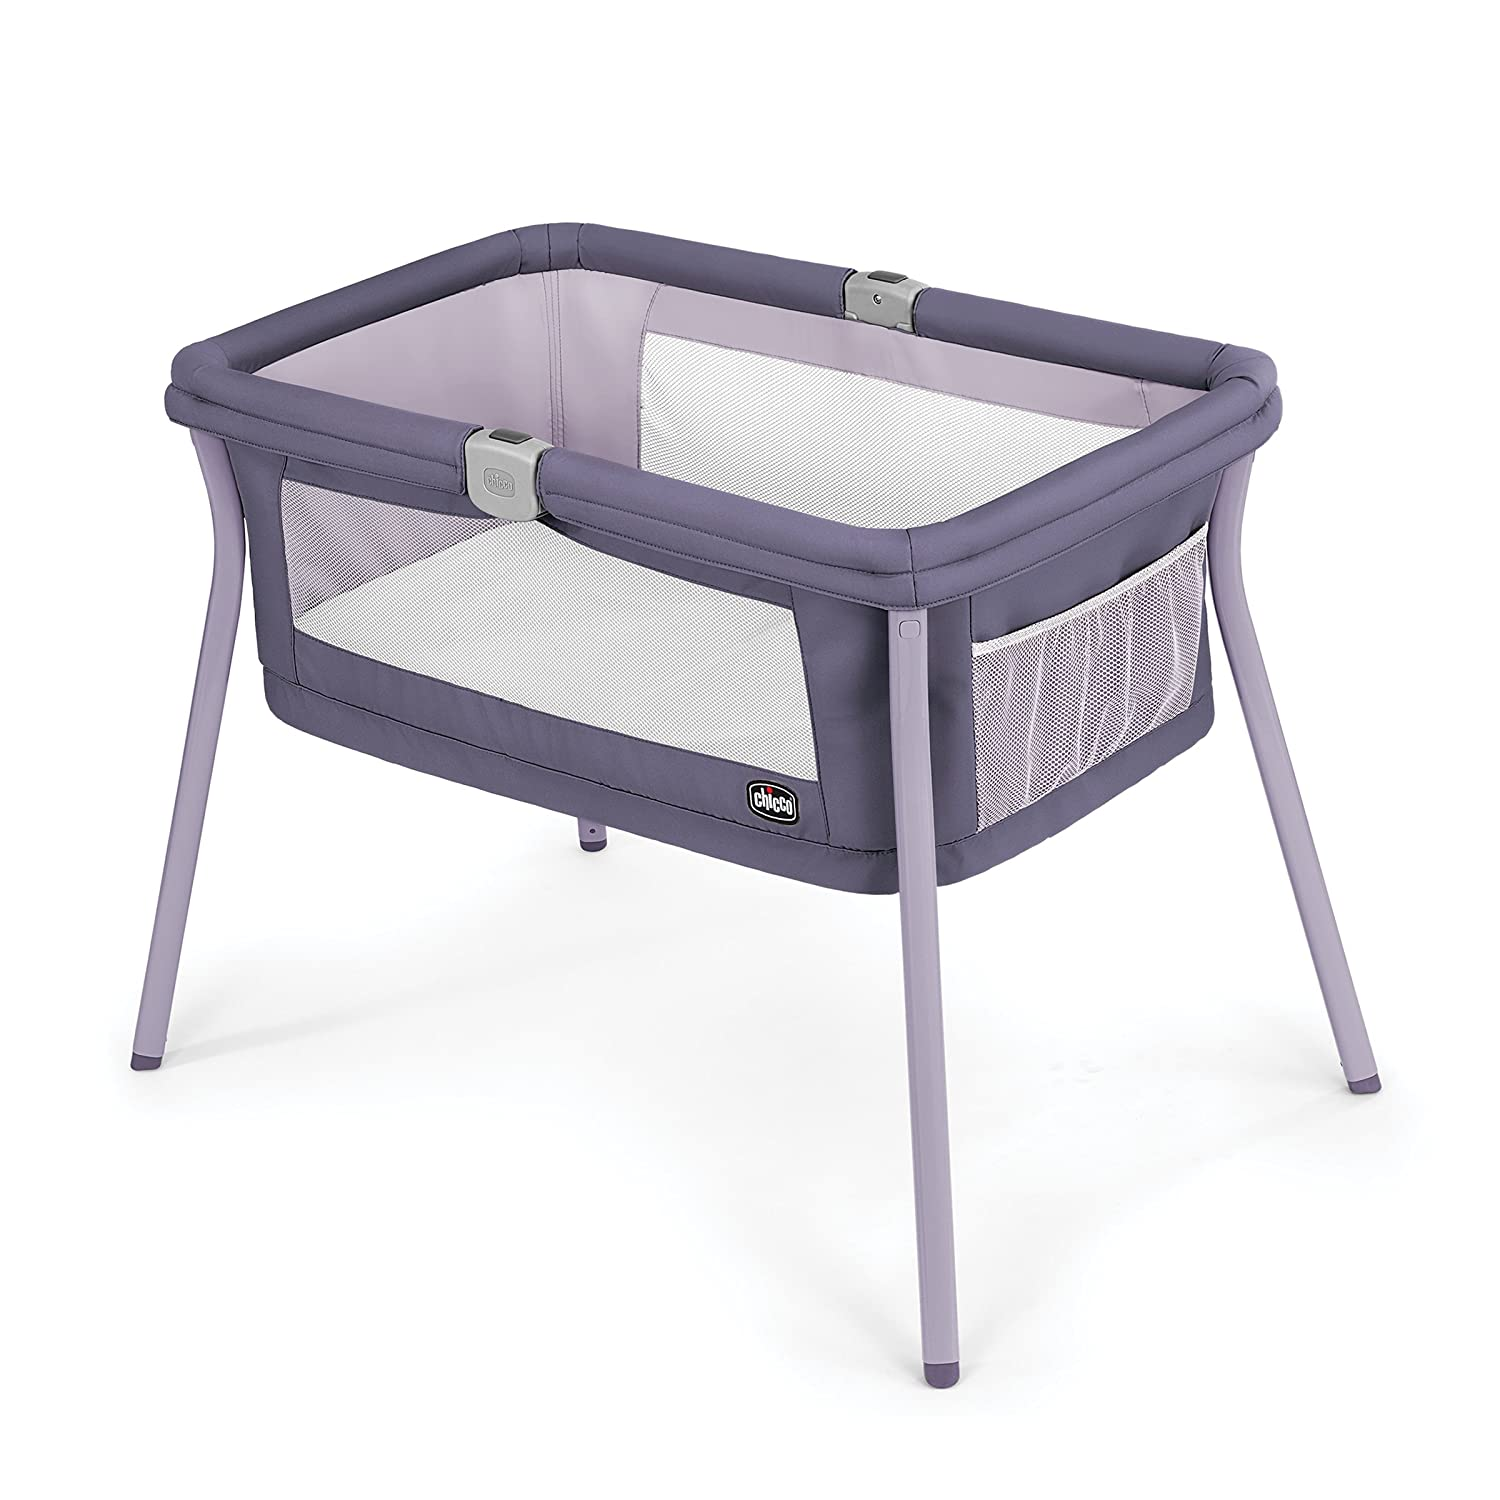 Chicco LullaGo Portable Bassinet, Sand 05079762870070